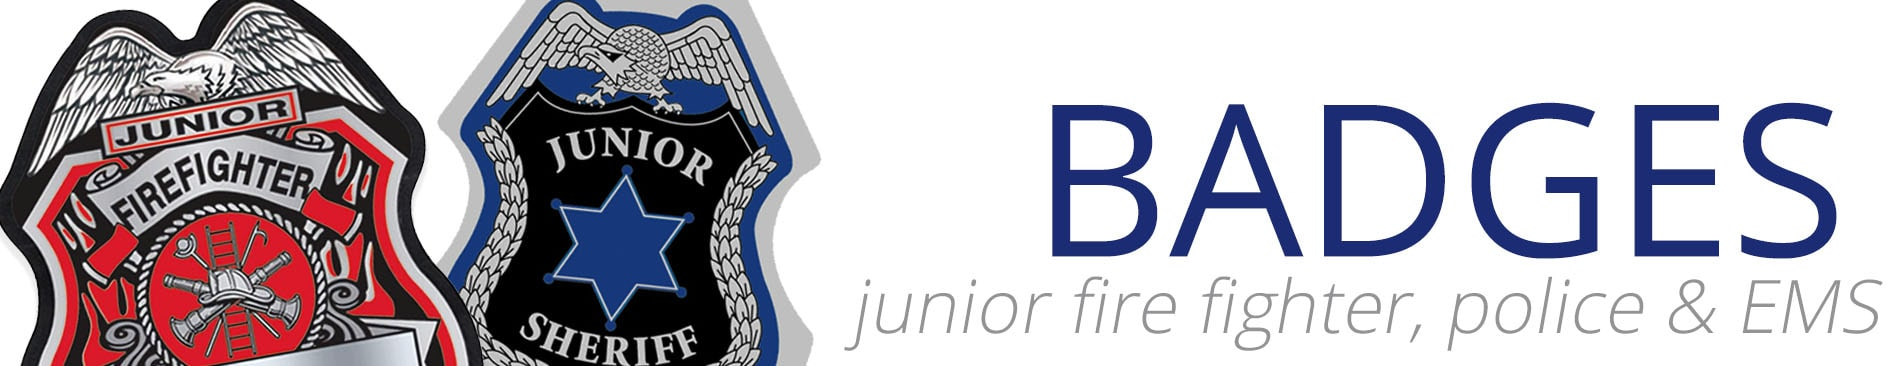 Junior Fire Fighter, Police Officer & EMS Badges